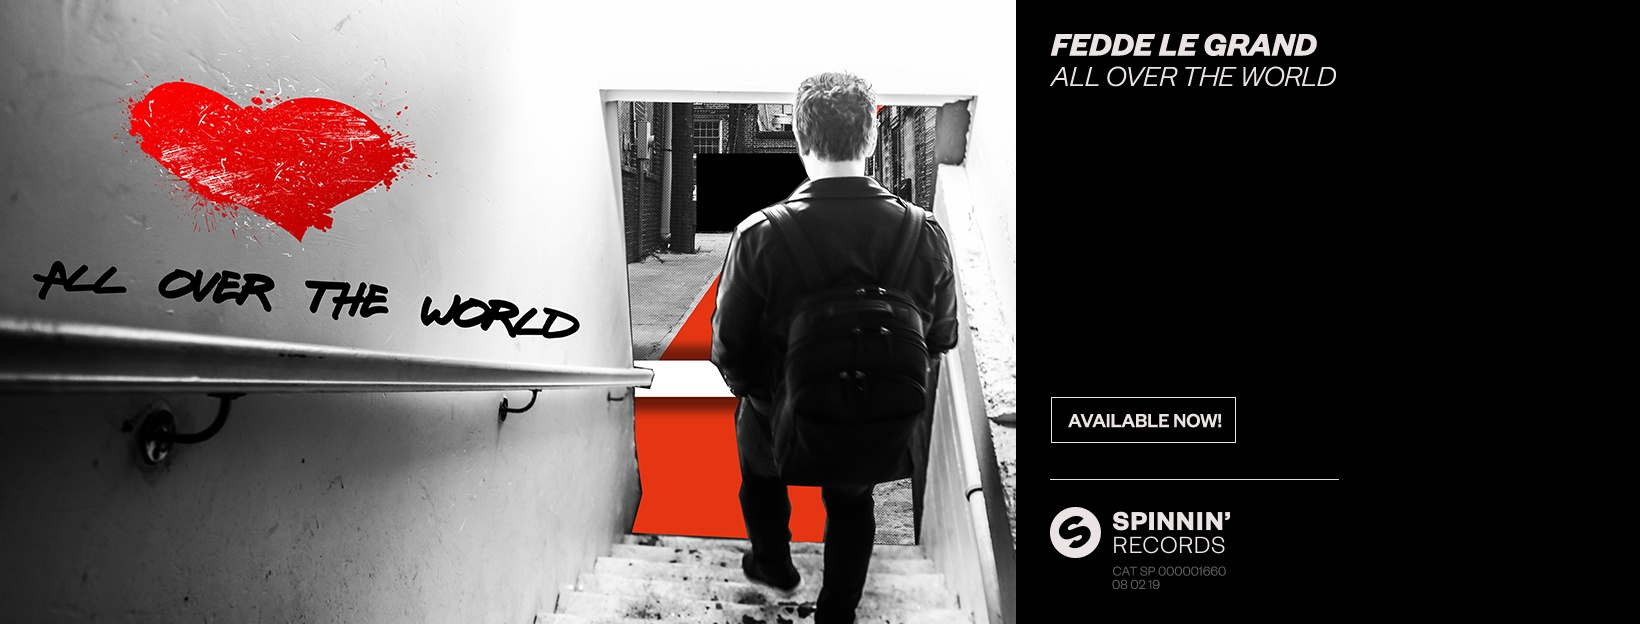 Fedde Le Grand - All Over The World [OUT NOW ON SPINNIN' RECORDS]